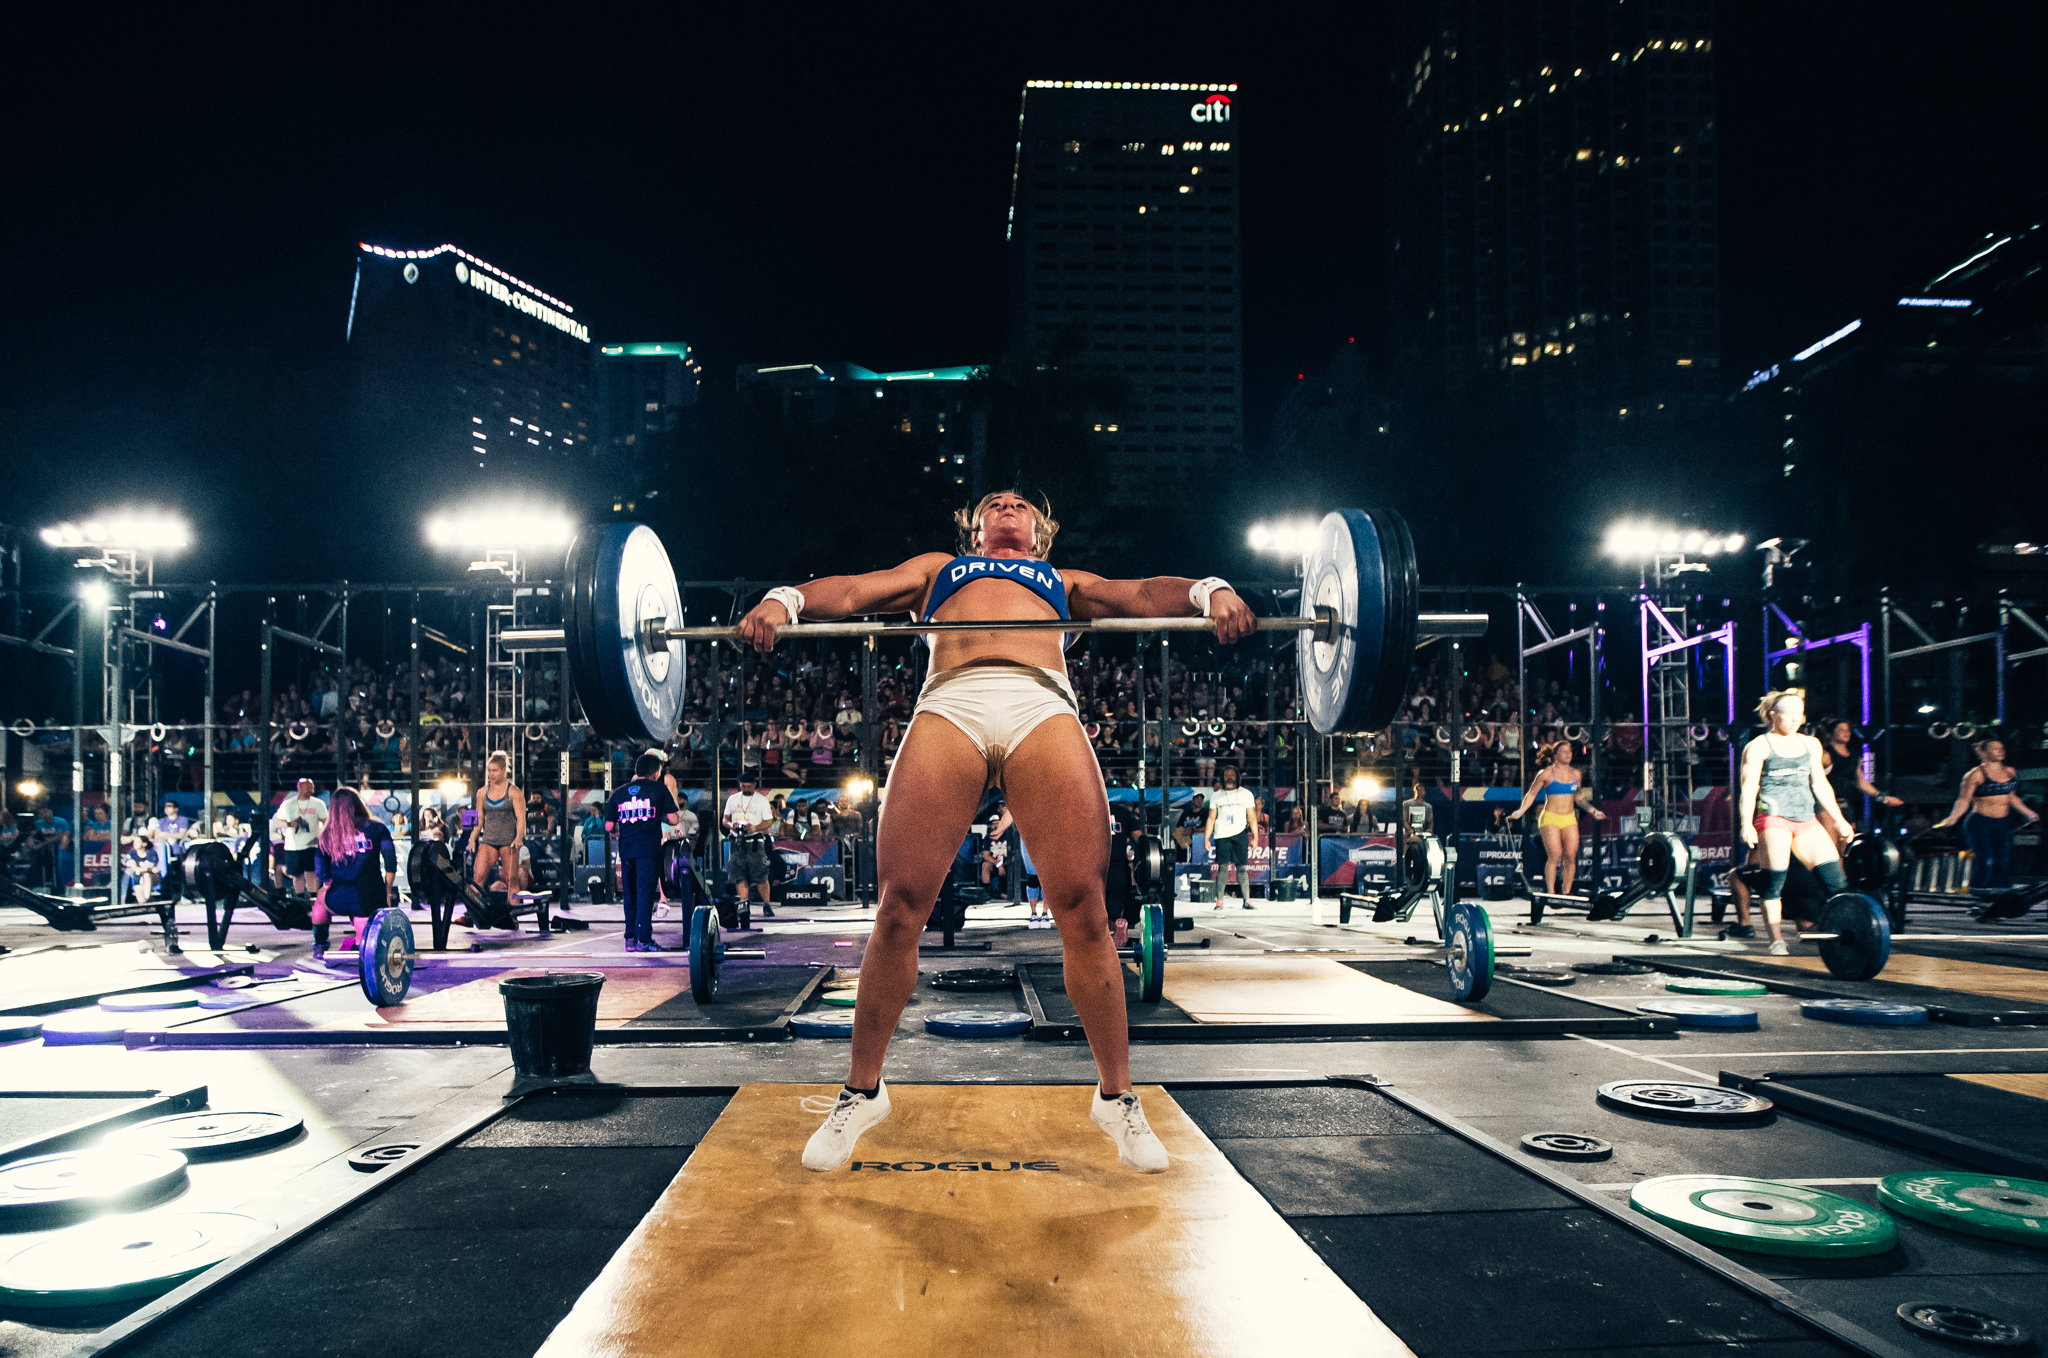 Crossfit Calendar 2019 Here Are the Dates for the 2017 CrossFit Games Season   BarBend